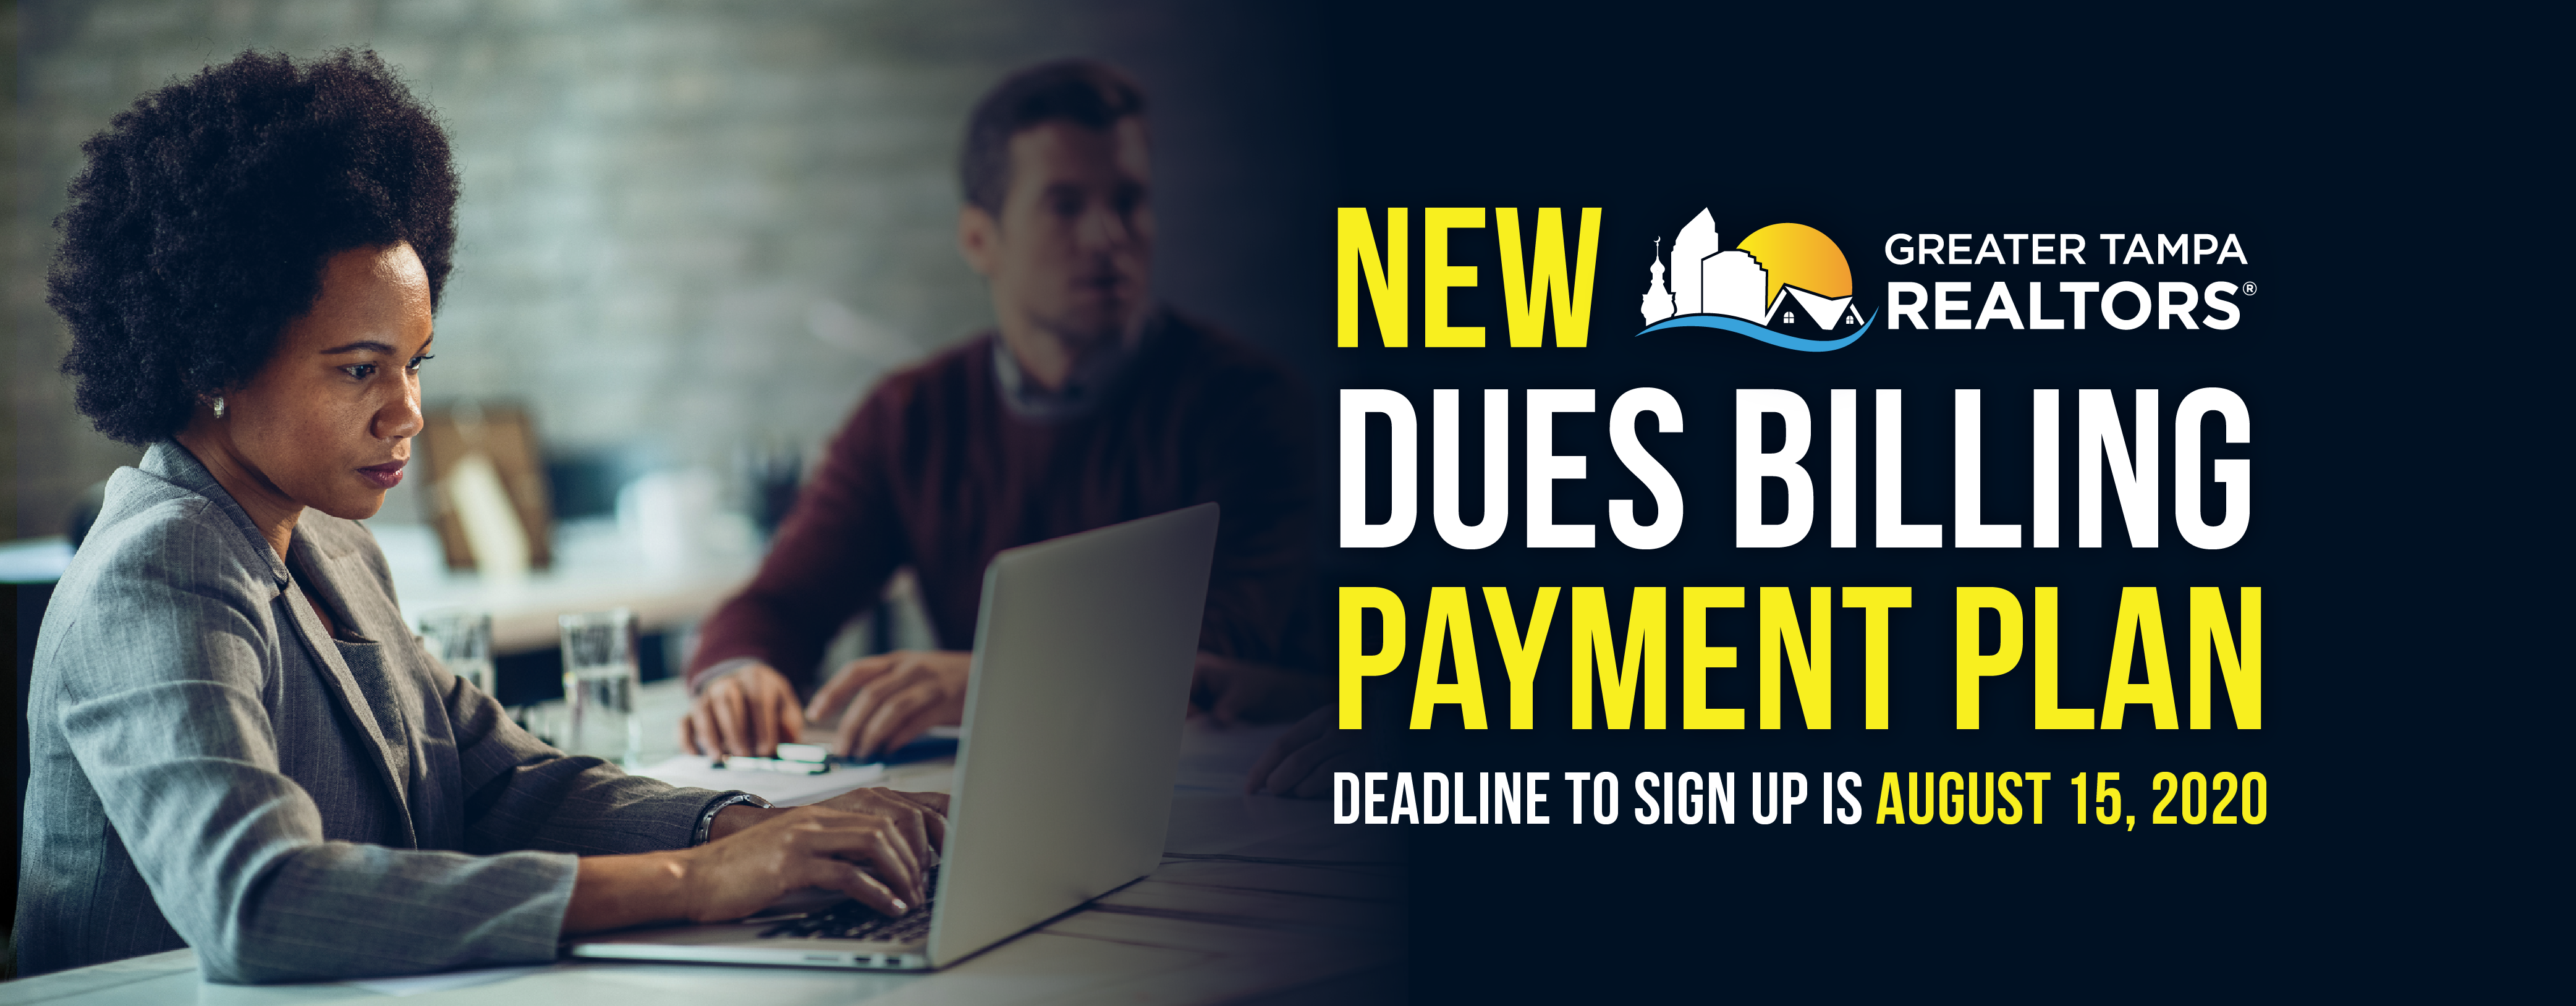 New Dues Billing Payment Plan Deadline to Sign up is August 25, 2020